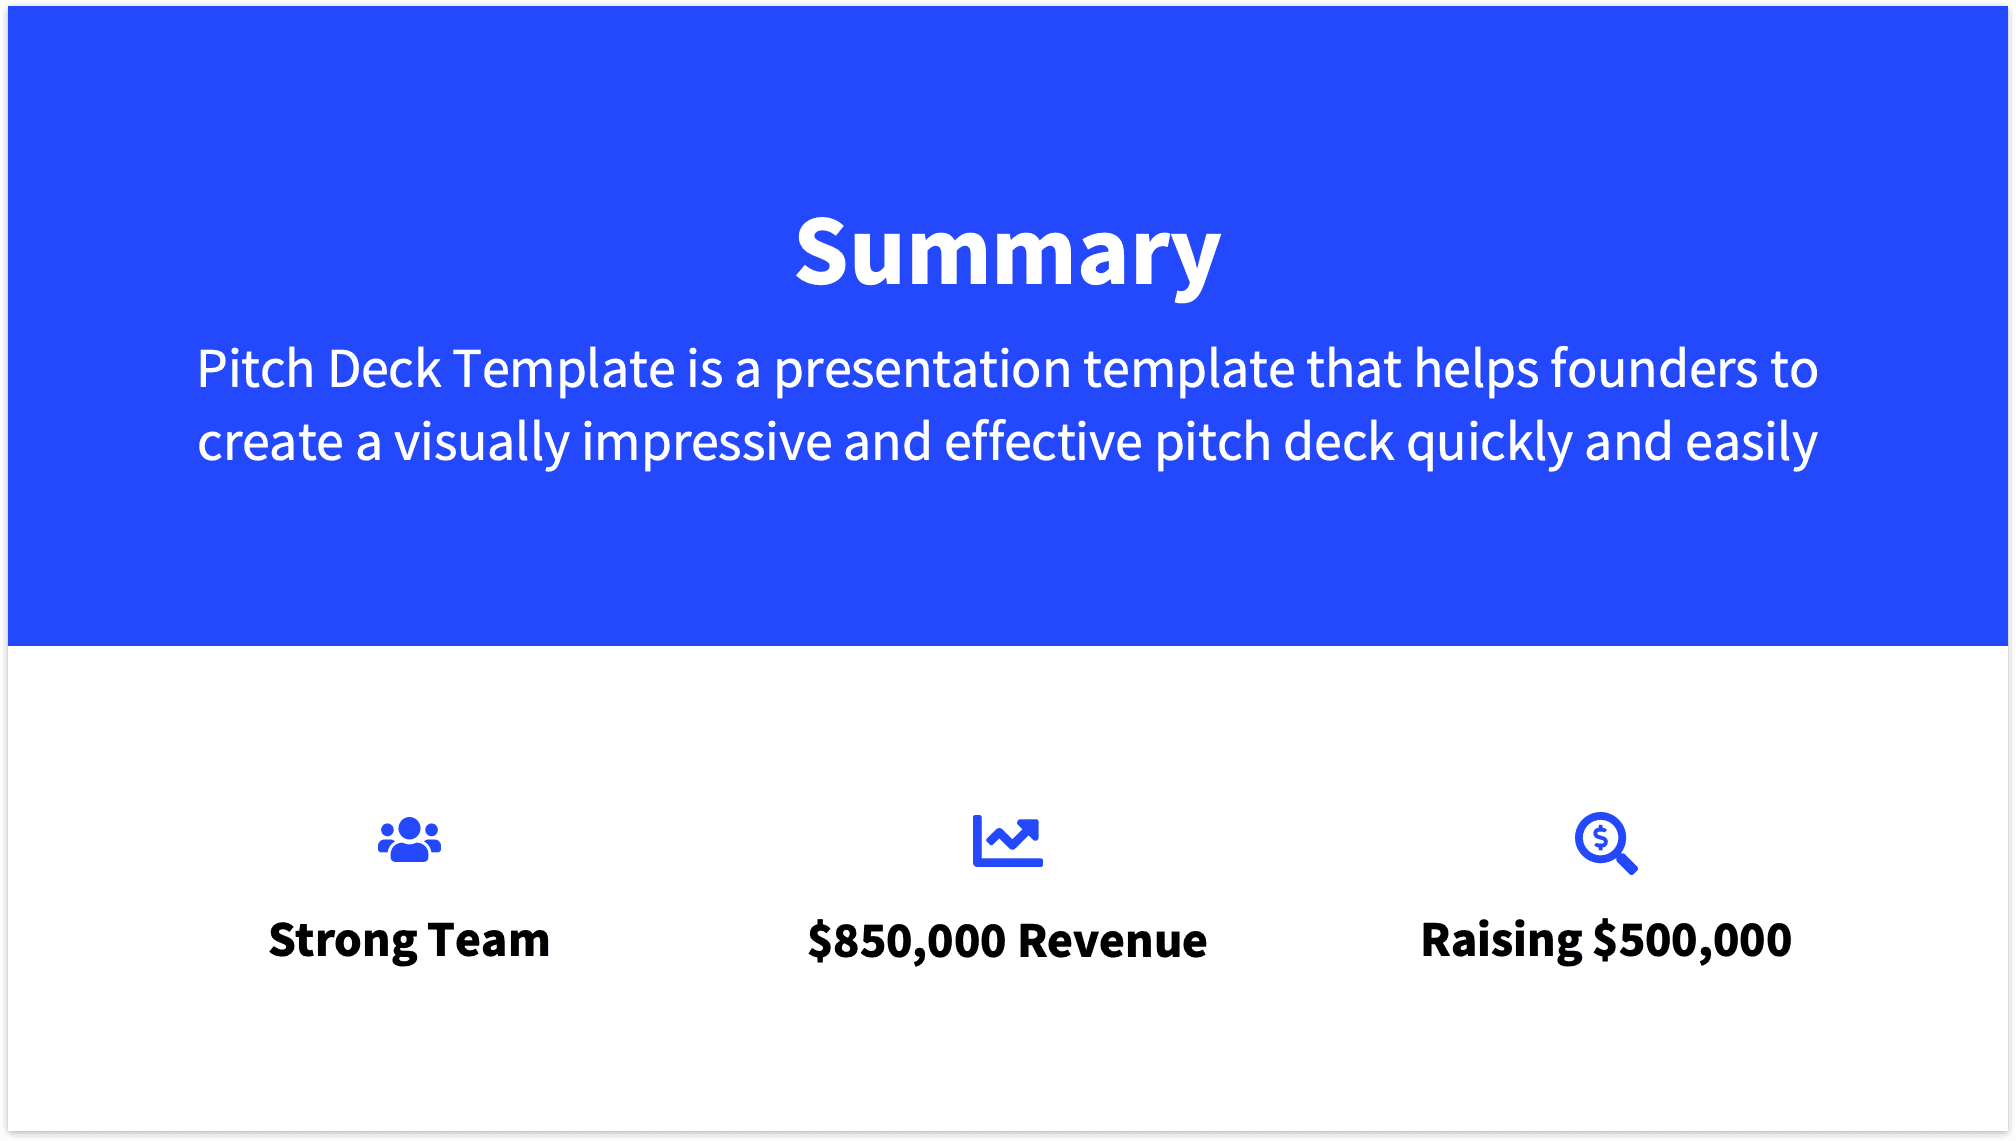 Cleanest version of summary slide with only three key facts of your pitch deck and a striking second headline